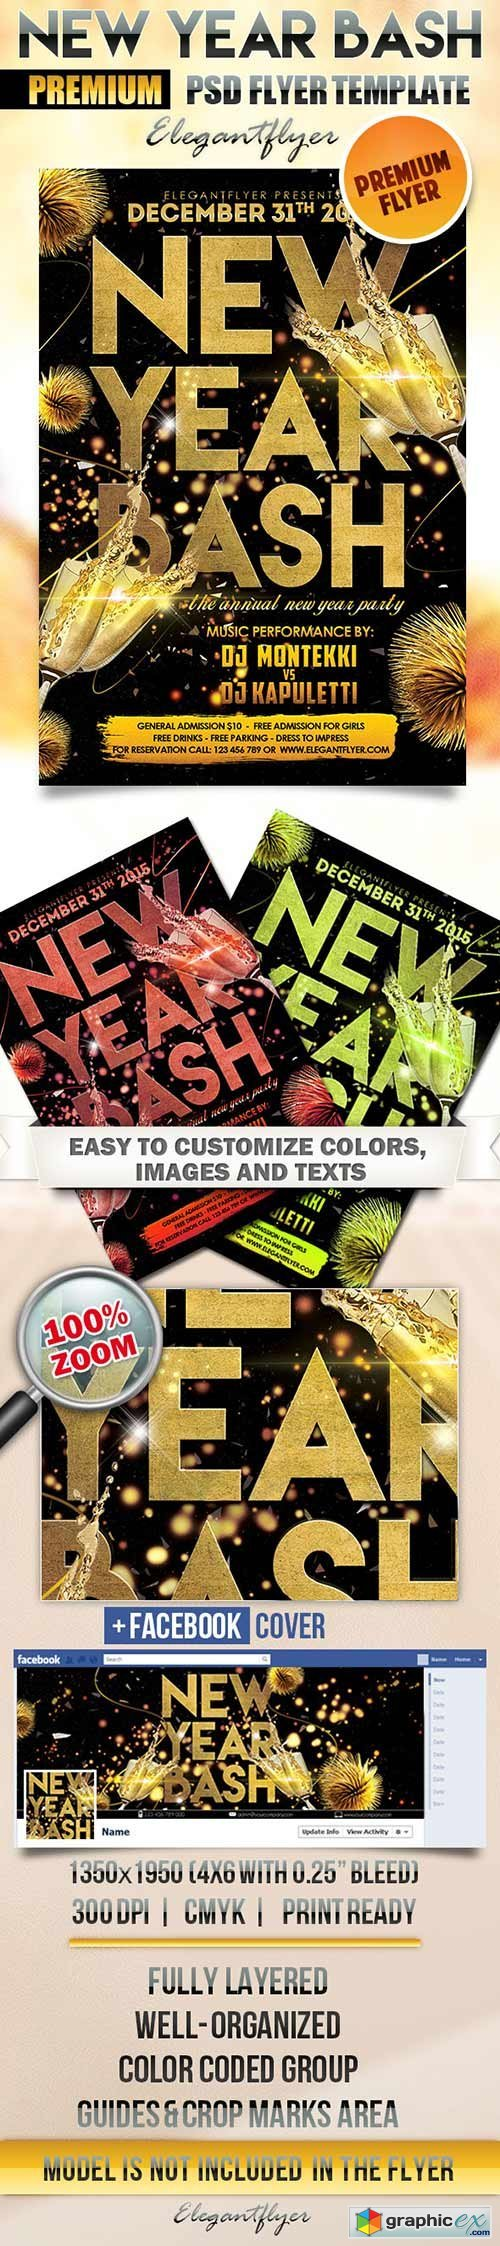 New Year Bash Flyer PSD Template + Facebook Cover